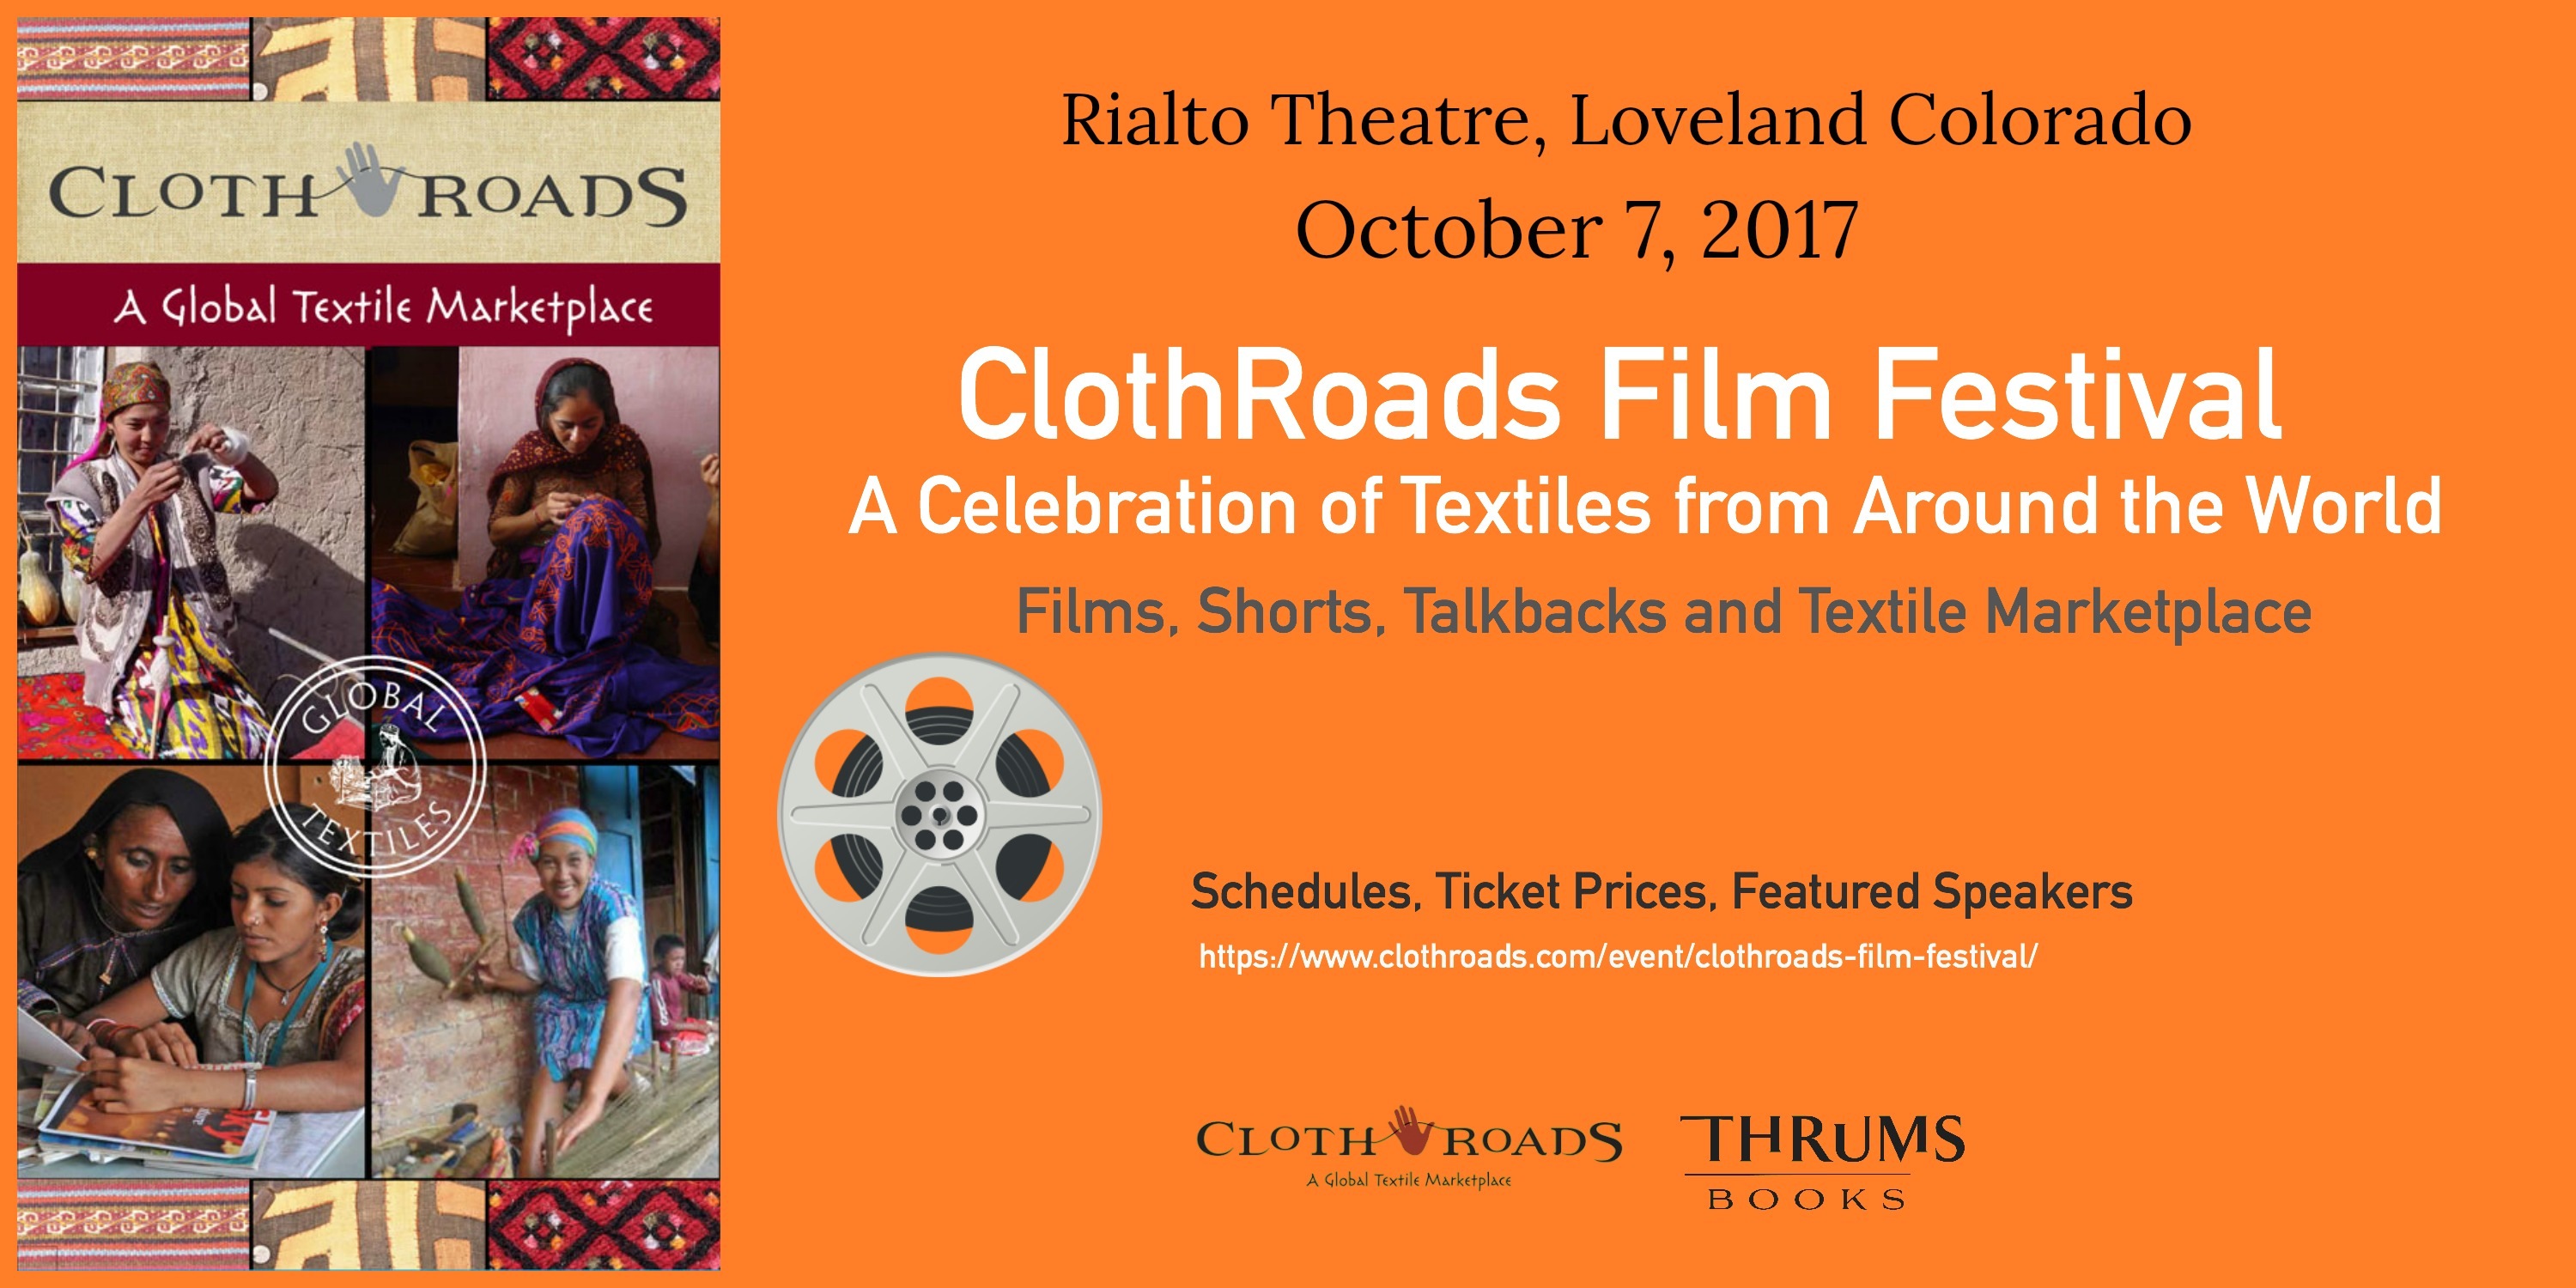 ClothRoads Film Festival